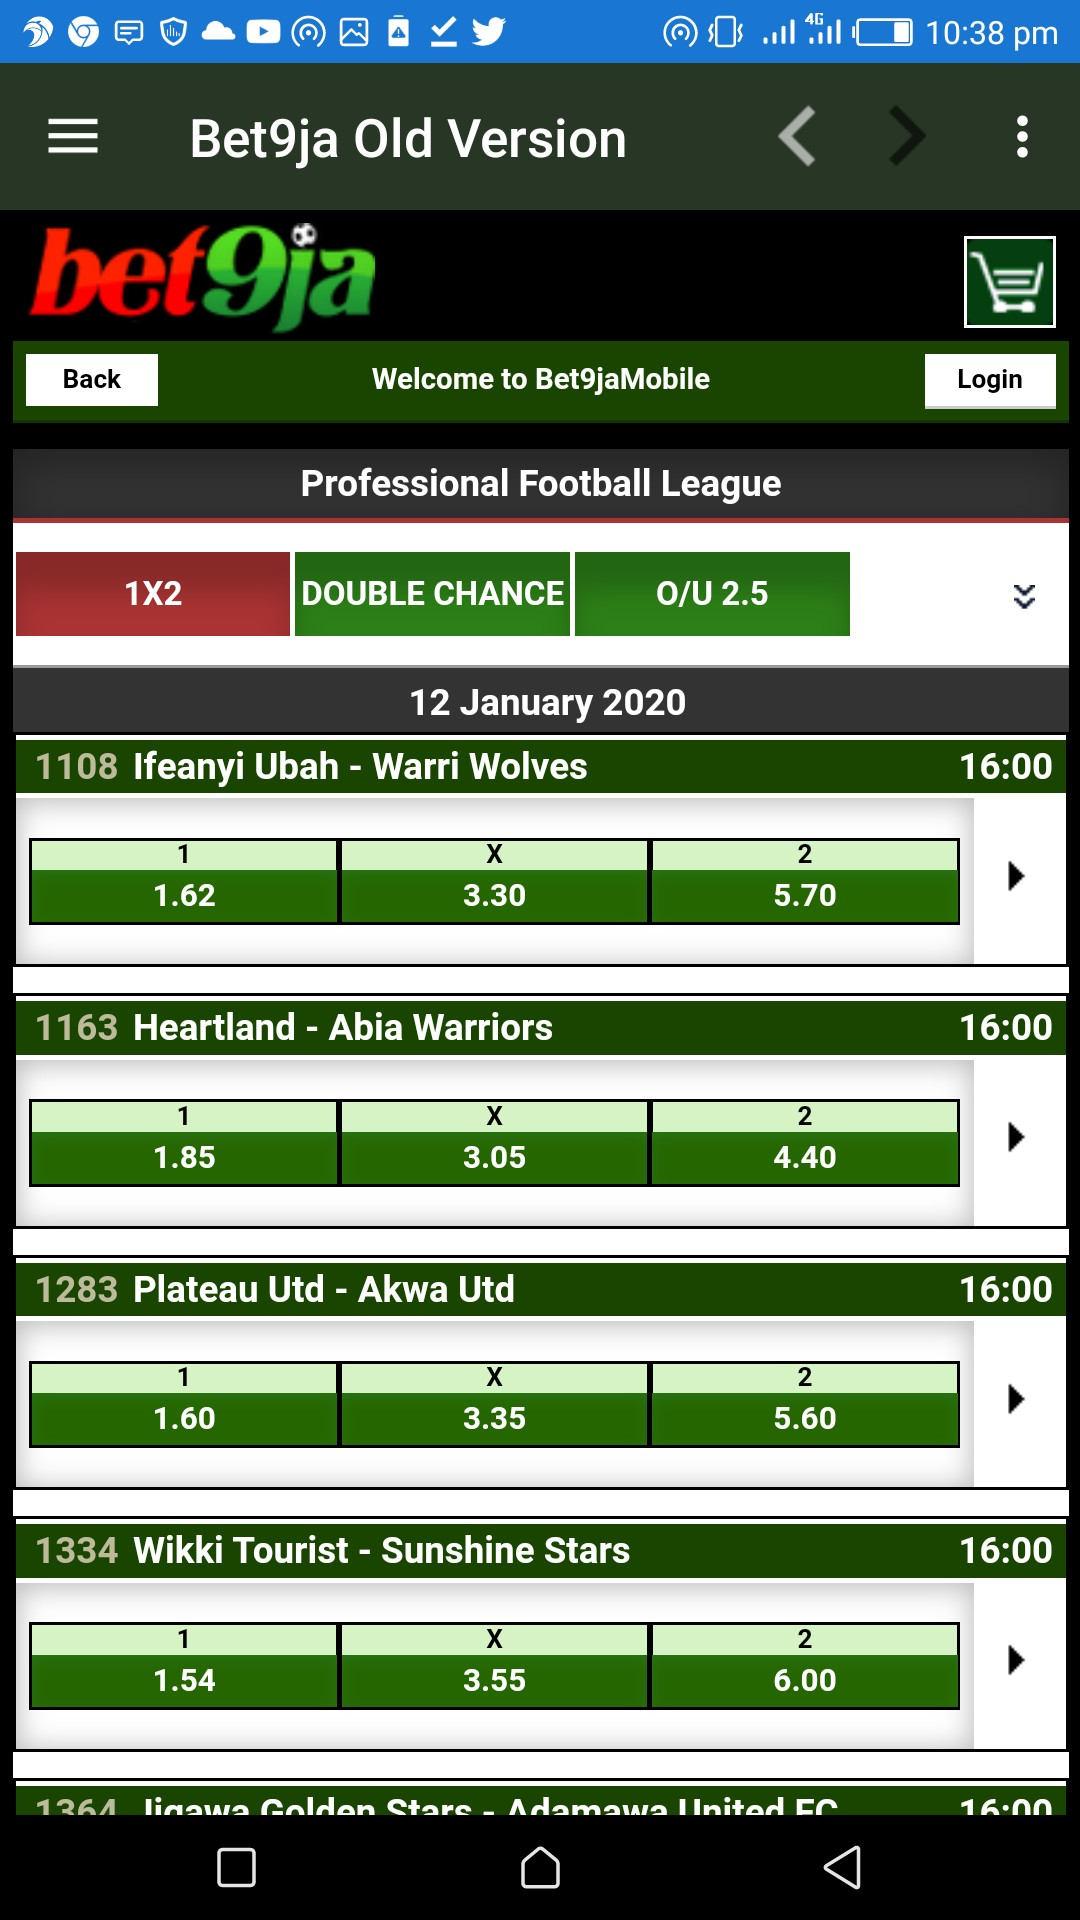 Screenshot 20200111 223856 - Bet9ja Mobile App Old Version - Download Old Bet9ja Apk App